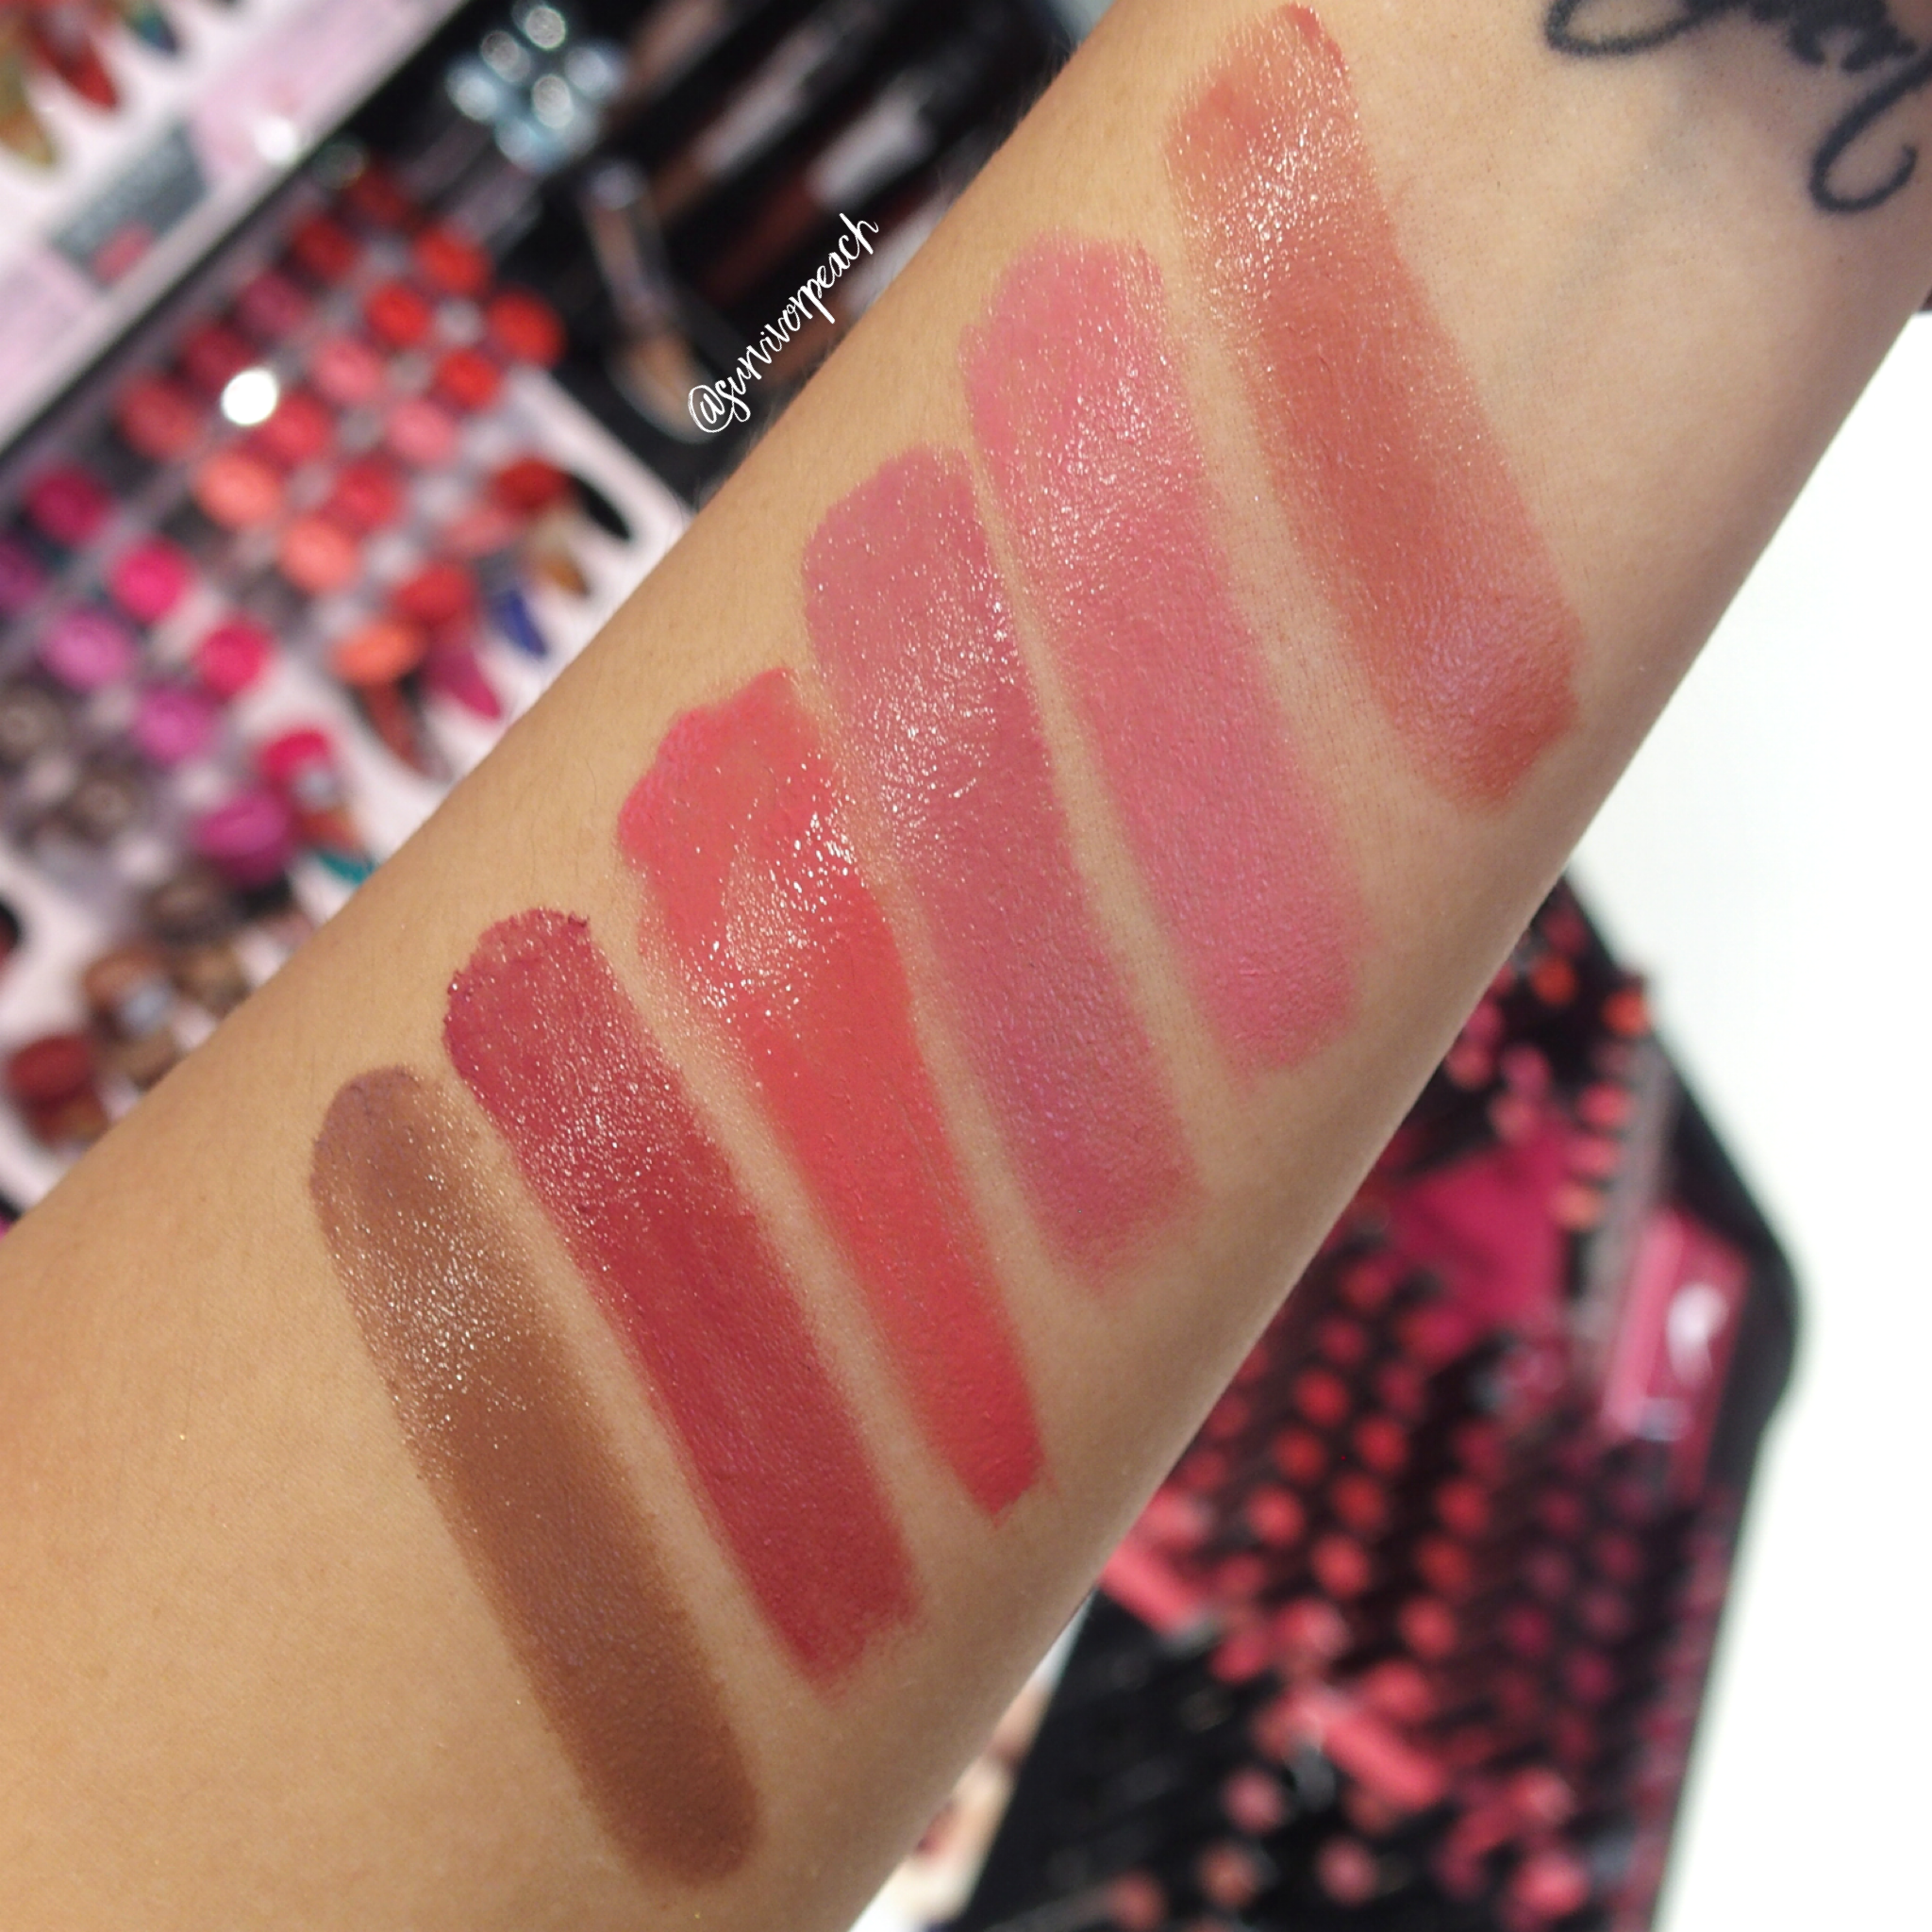 Sephora Collection Lipstick Rouge Lacquer Lipstick swatches - L15 Not Your Baby , L16 Girl Crush, L17 Rise Above, L18 Slay, L19 Stronger, L20 Squad Goals